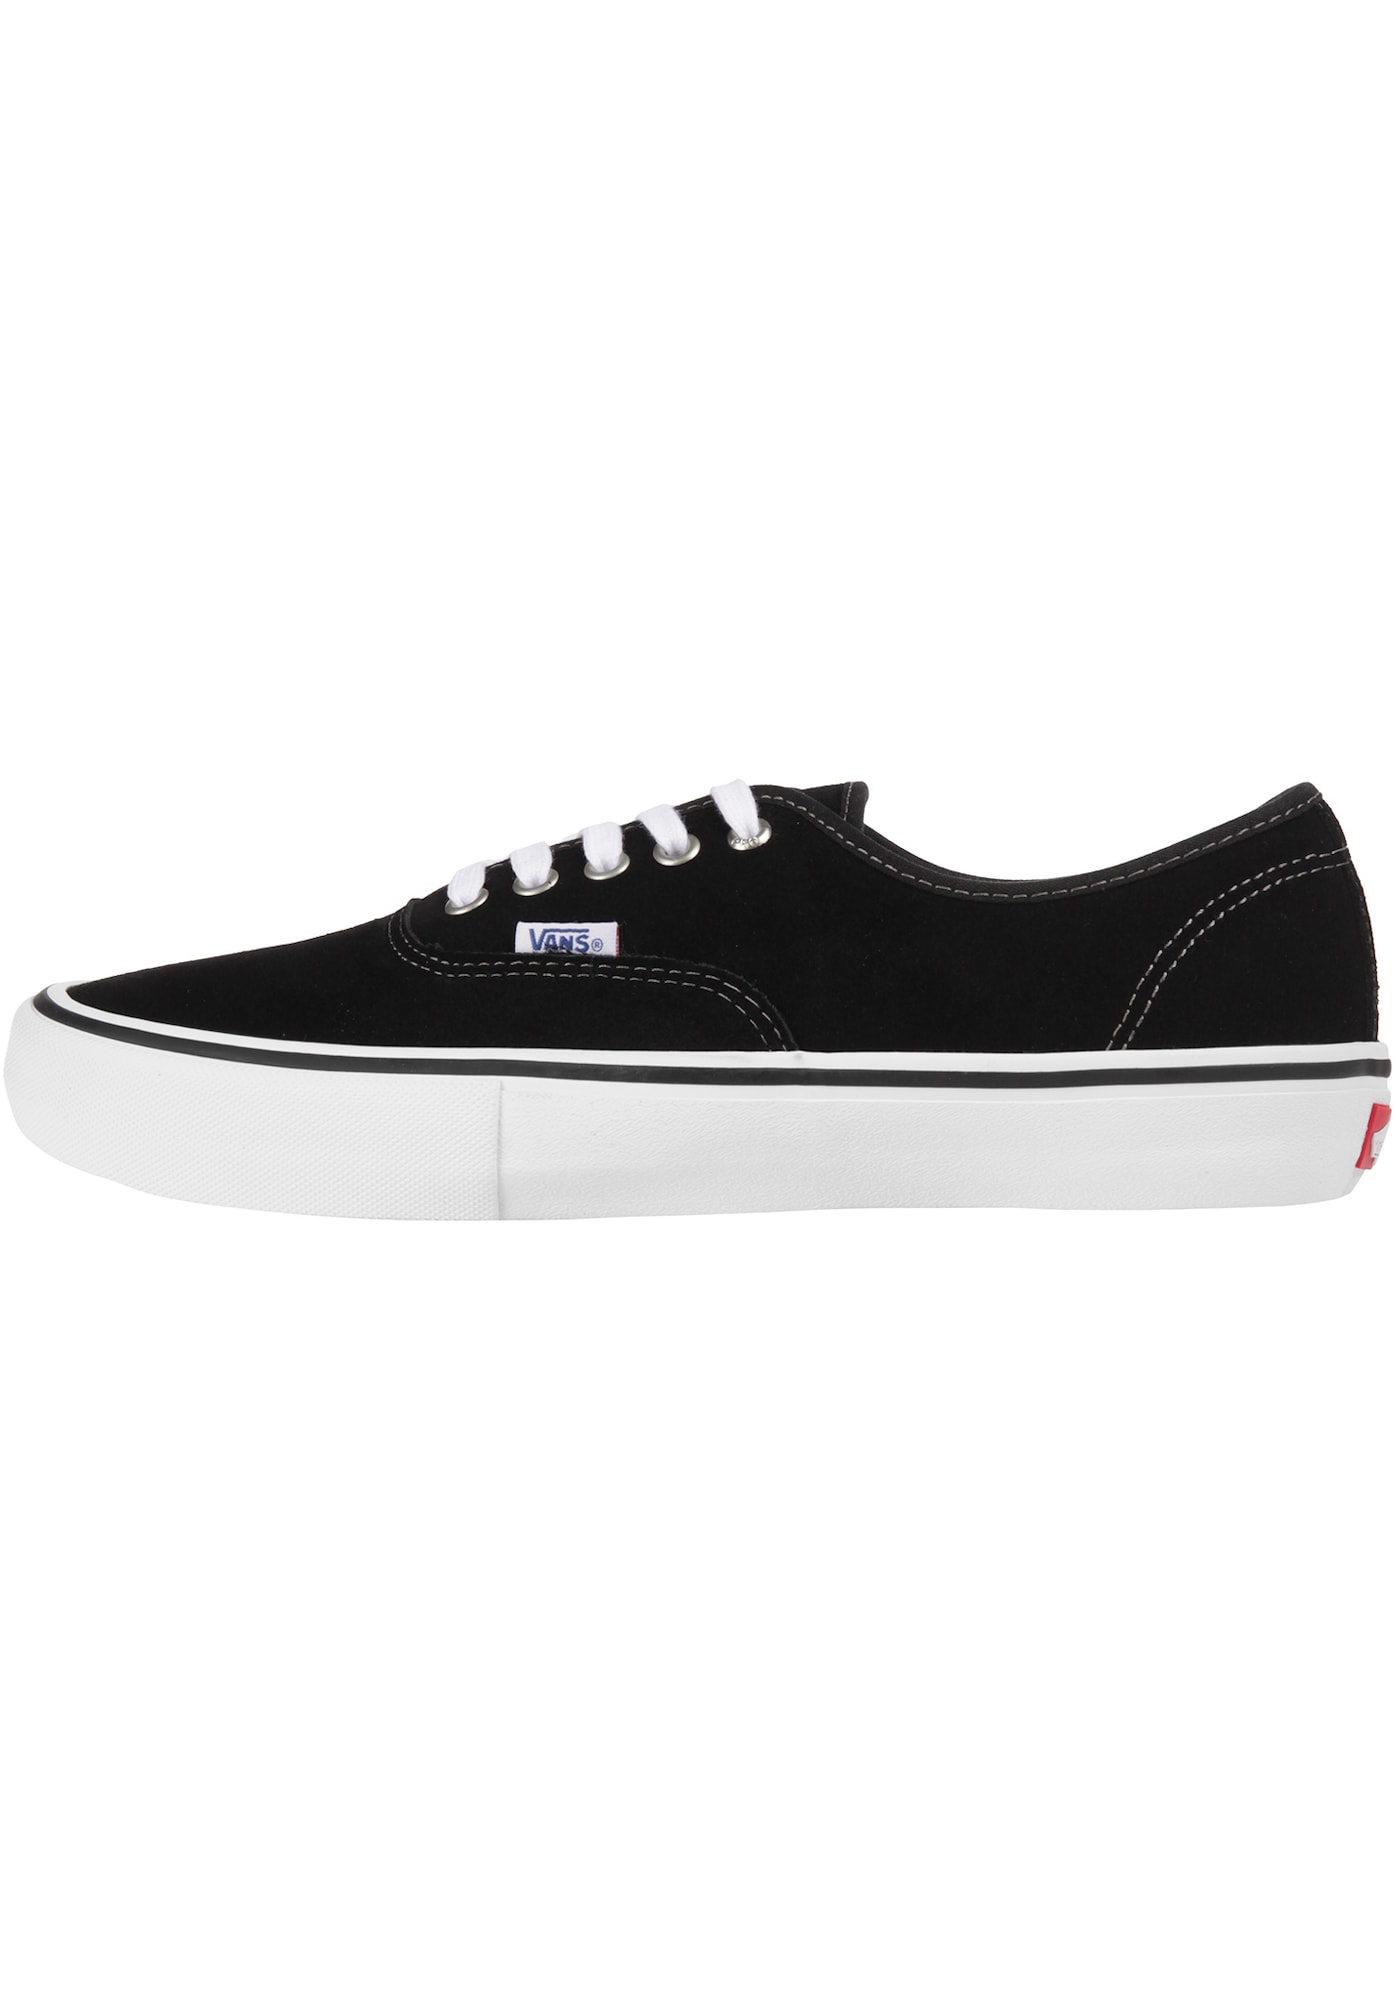 VANS, Heren Sneakers laag 'Authentic Pro', zwart